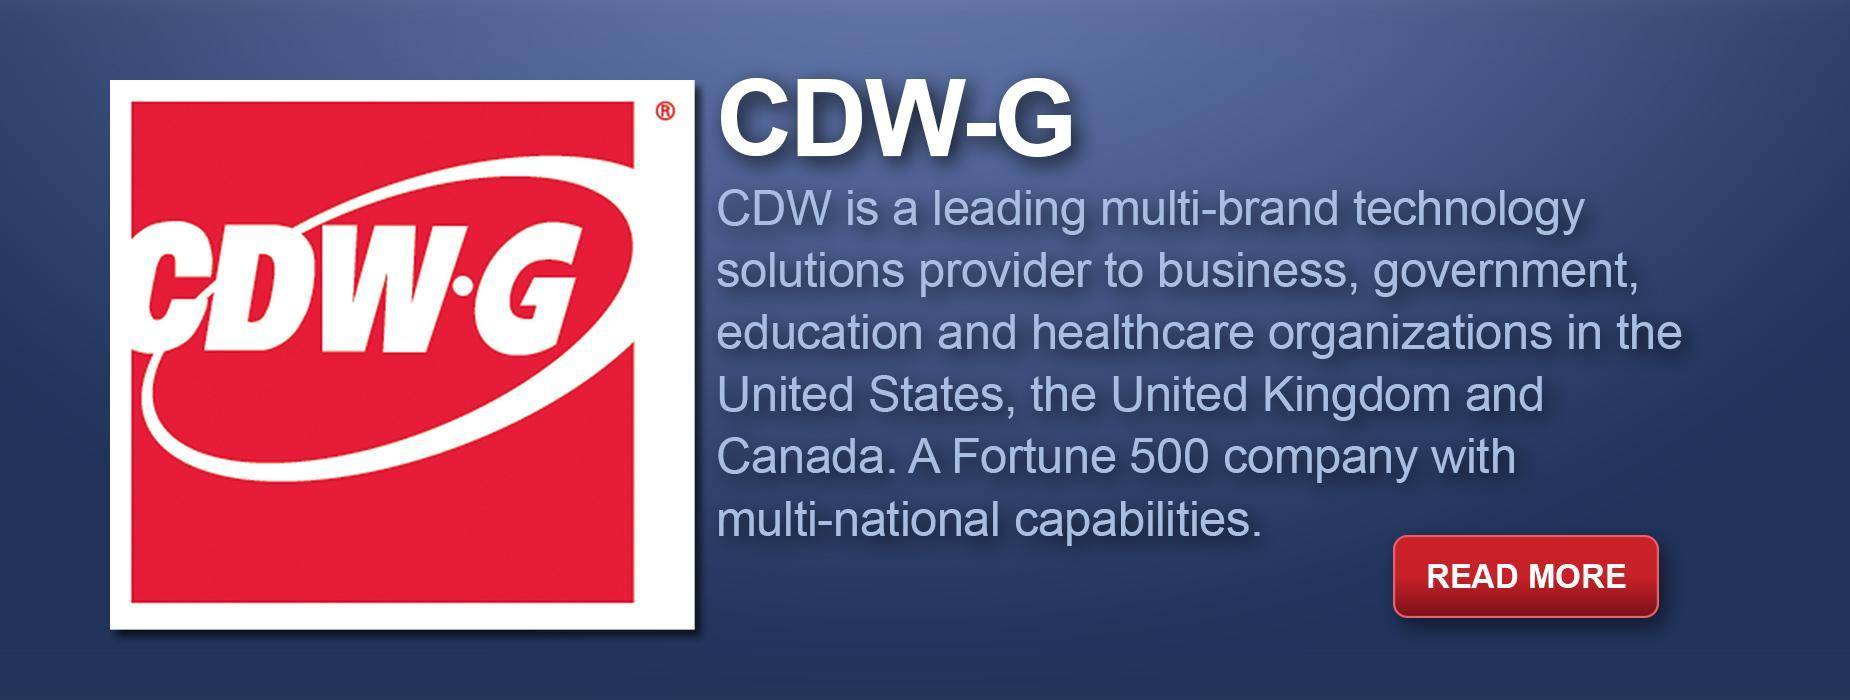 CDW-G: CDW is a leading multi-brand technology solutions provider to business, government, education and healthcare organizations in the United States, the United Kingdom and Canada. A Fortune 500 company with multi-national capabilities. Read More